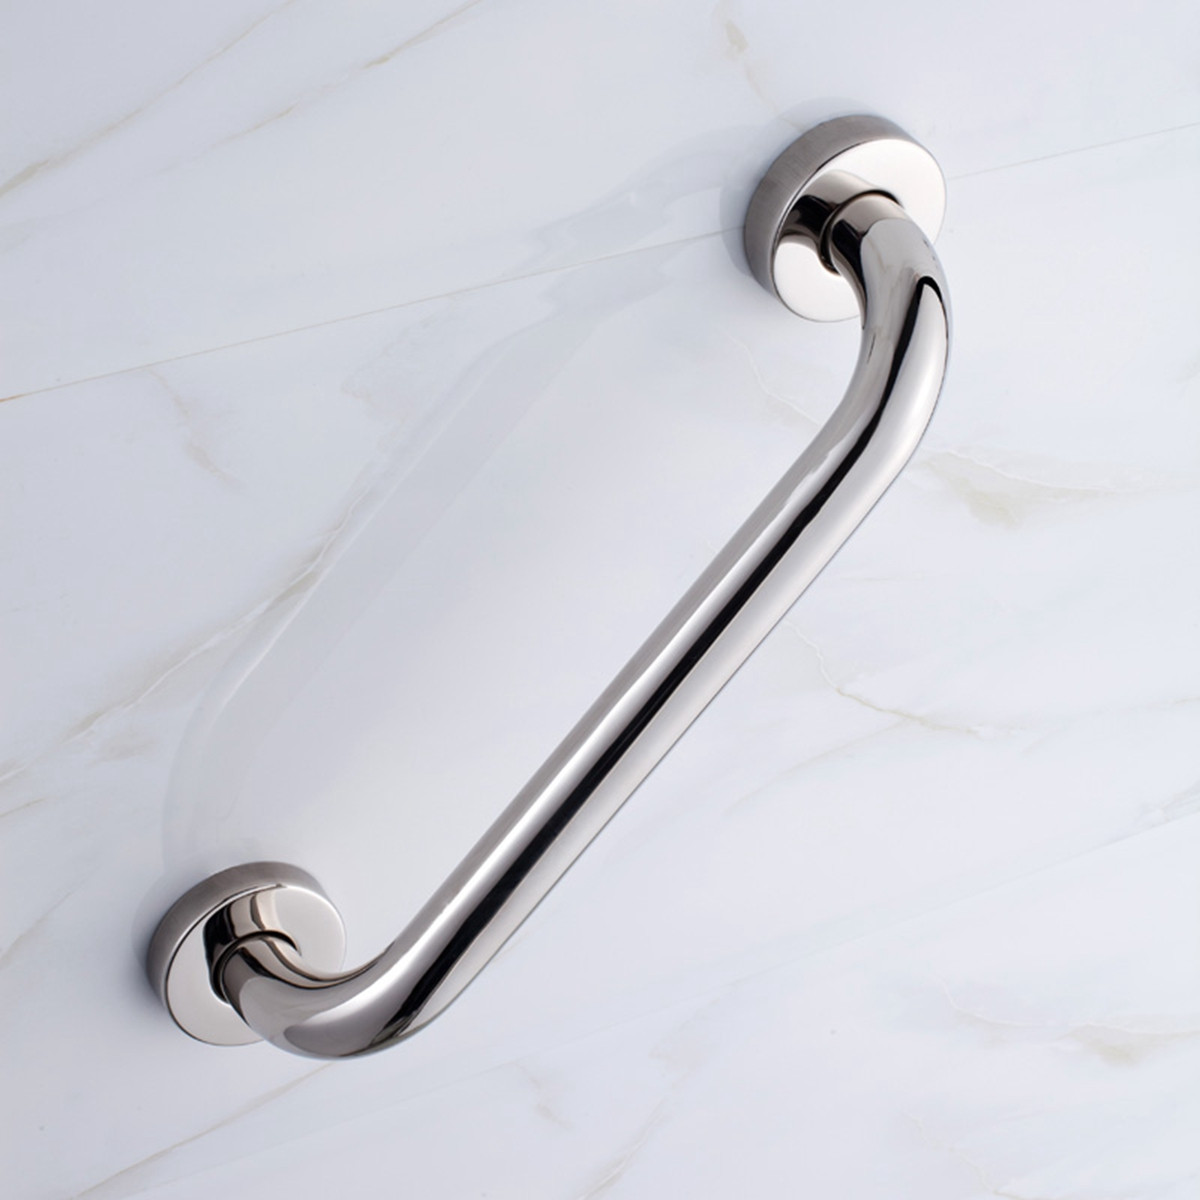 Stainless Steel Bathroom Grab Bar Disability Handle Hand Rail ...